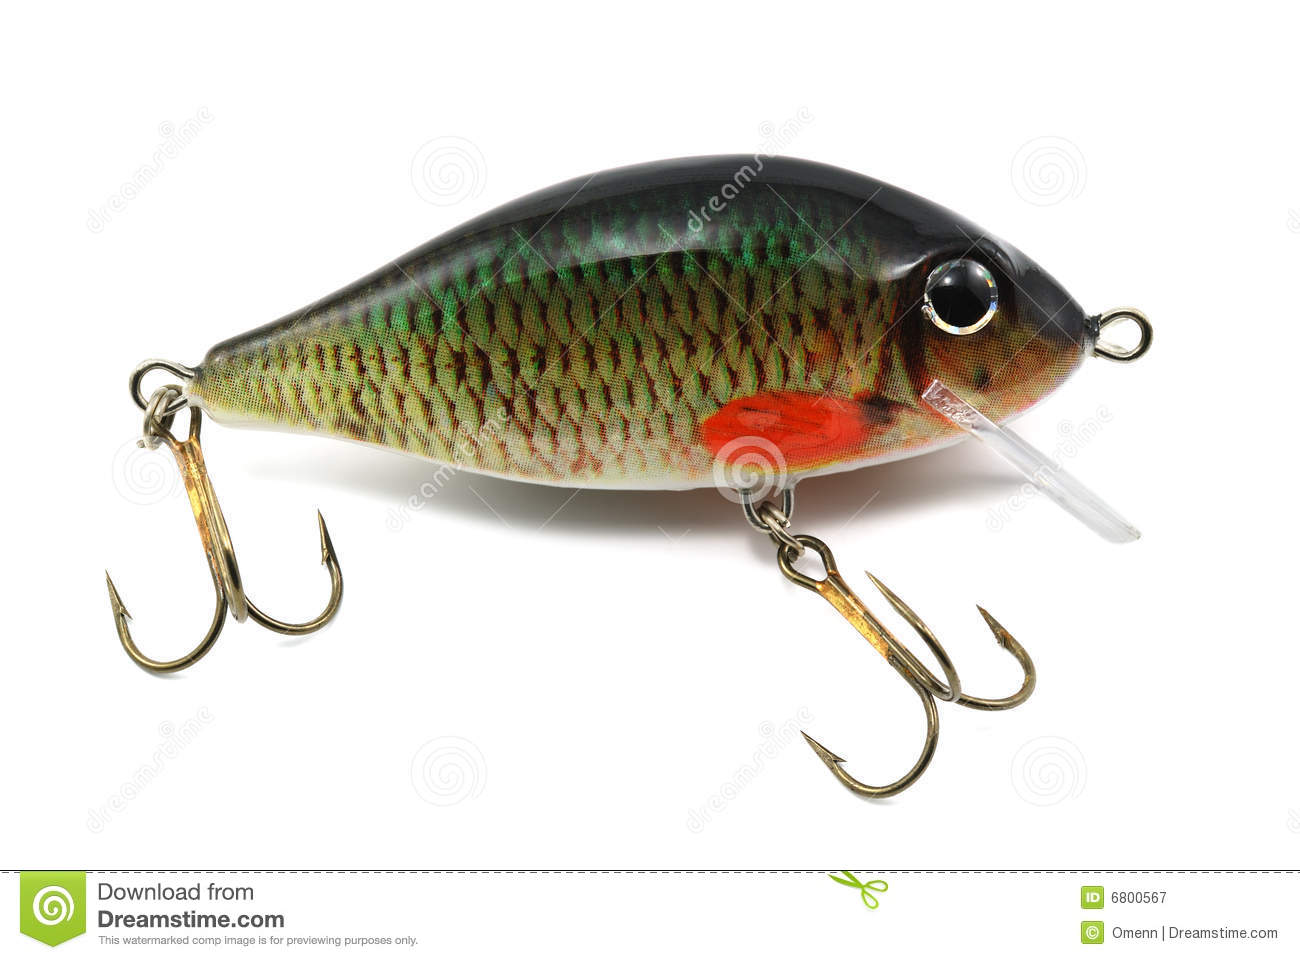 Fishing lure royalty free stock photography image 6800567 for Fishing times free